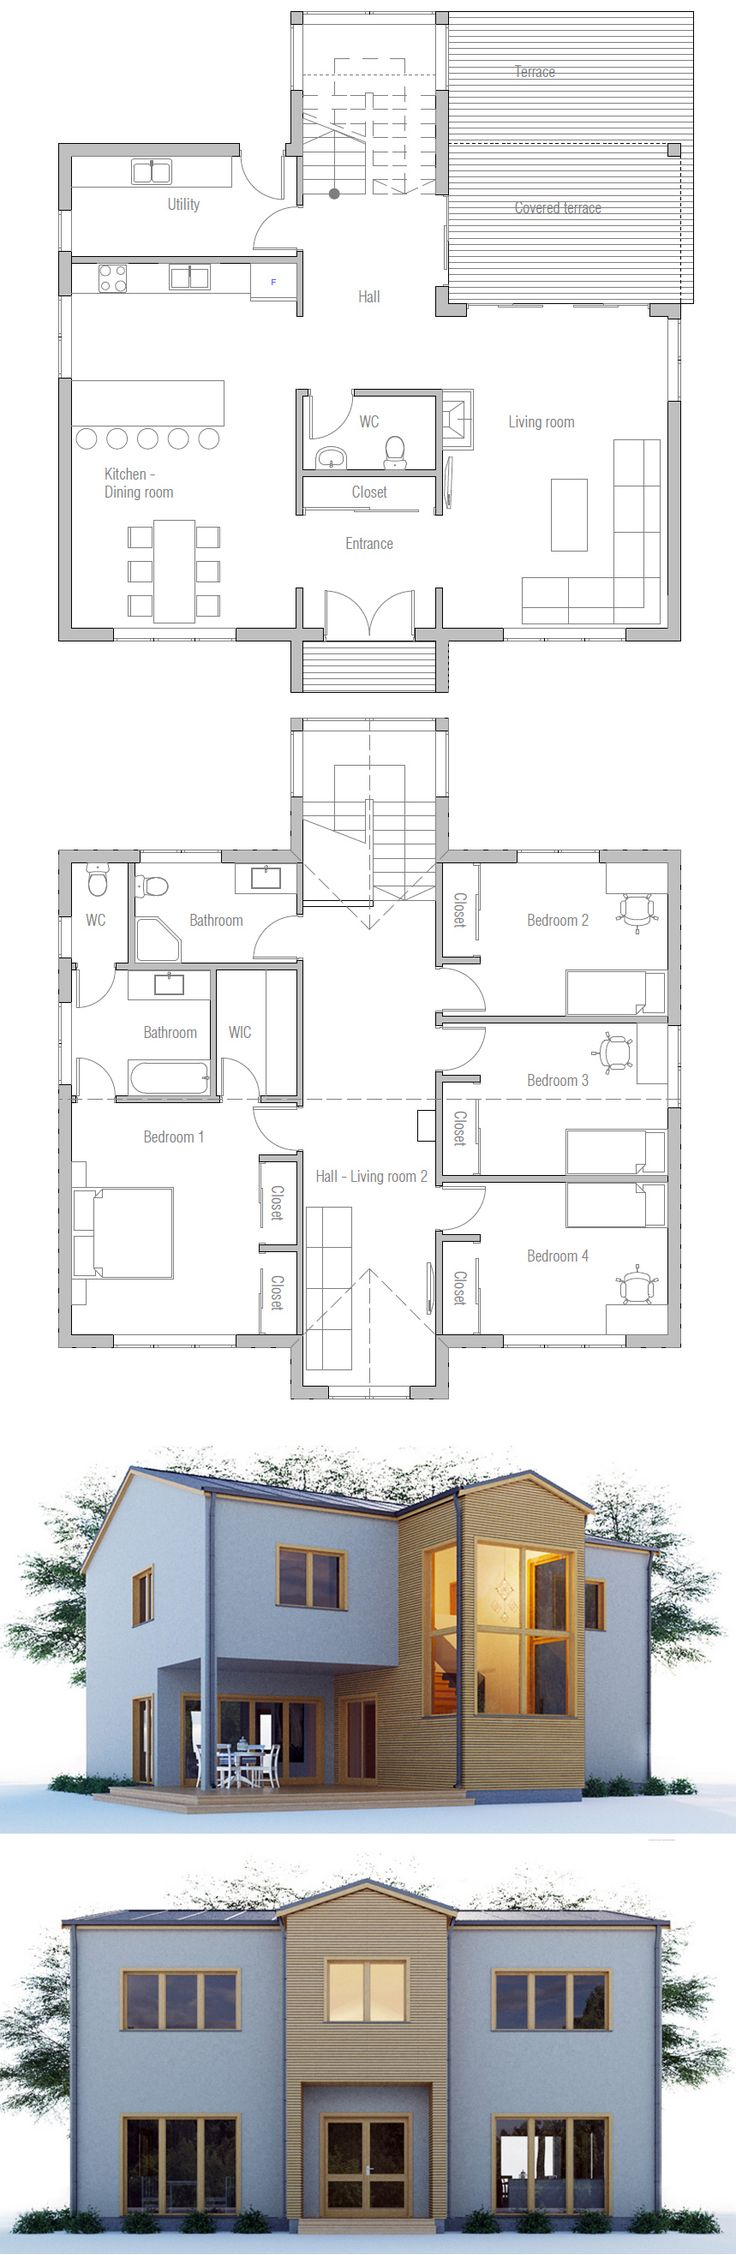 Floor Plan - like the stair layout, but move the 1st floor bathroom so that it's next to the utility room